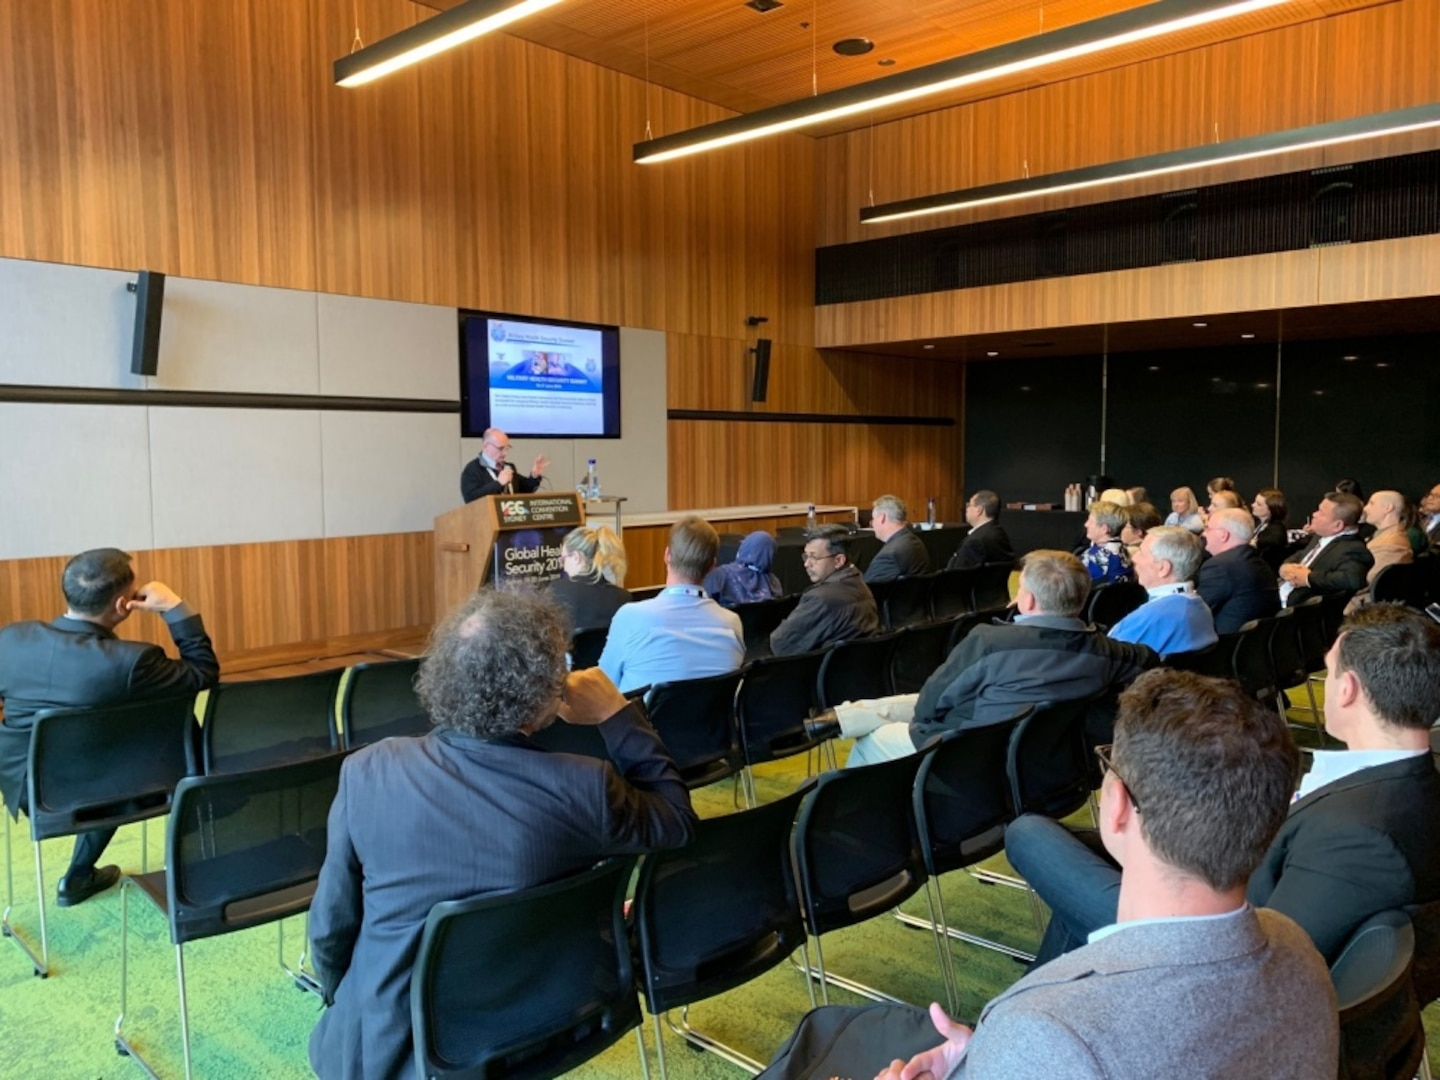 """CAMP SMITH (June 20, 2019) - U.S. Indo-Pacific Command (USINDOPACOM) Surgeon, Rear Adm. Louis C. Tripoli, speaks at the Global Health Security Conference in Sydney, Australia. The Conference caps off a nearly month long trip in which Tripoli participated in the Health and Humanitarian Actions in Emergencies Course, visited the Australian Defence Force Malaria and Infectious Disease Institute, , attended the World Health Organization event """"Scaling Up Country Health Emergency Preparedness"""" and co-hosted the Military Health Security Summit with the Australian Defence Force."""